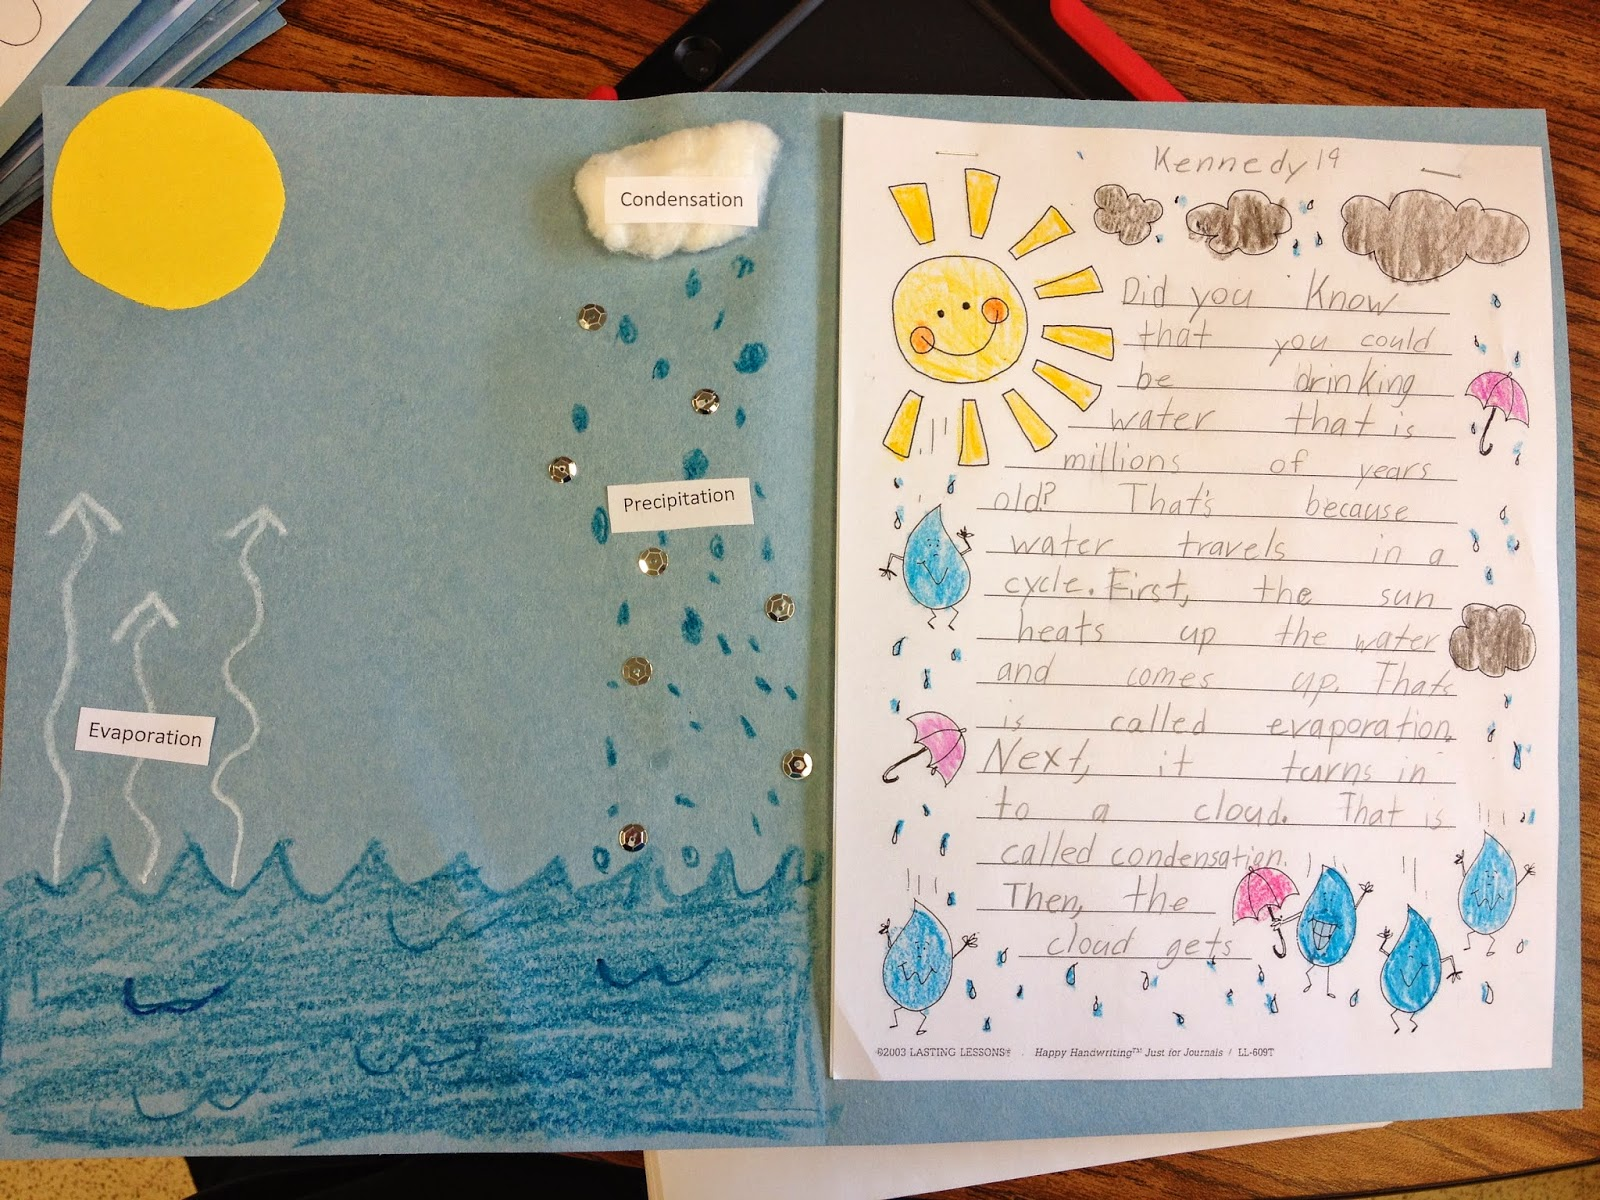 Teaching 2nd Grade 50 Tips Tricks From Teachers Whove Been There Ideas About Printed Circuit Board On Pinterest Water Transfer Film Demonstrate How It Rains With Blue Food Coloring And Shaving Cream Then Create A Colorful Report The Cycle